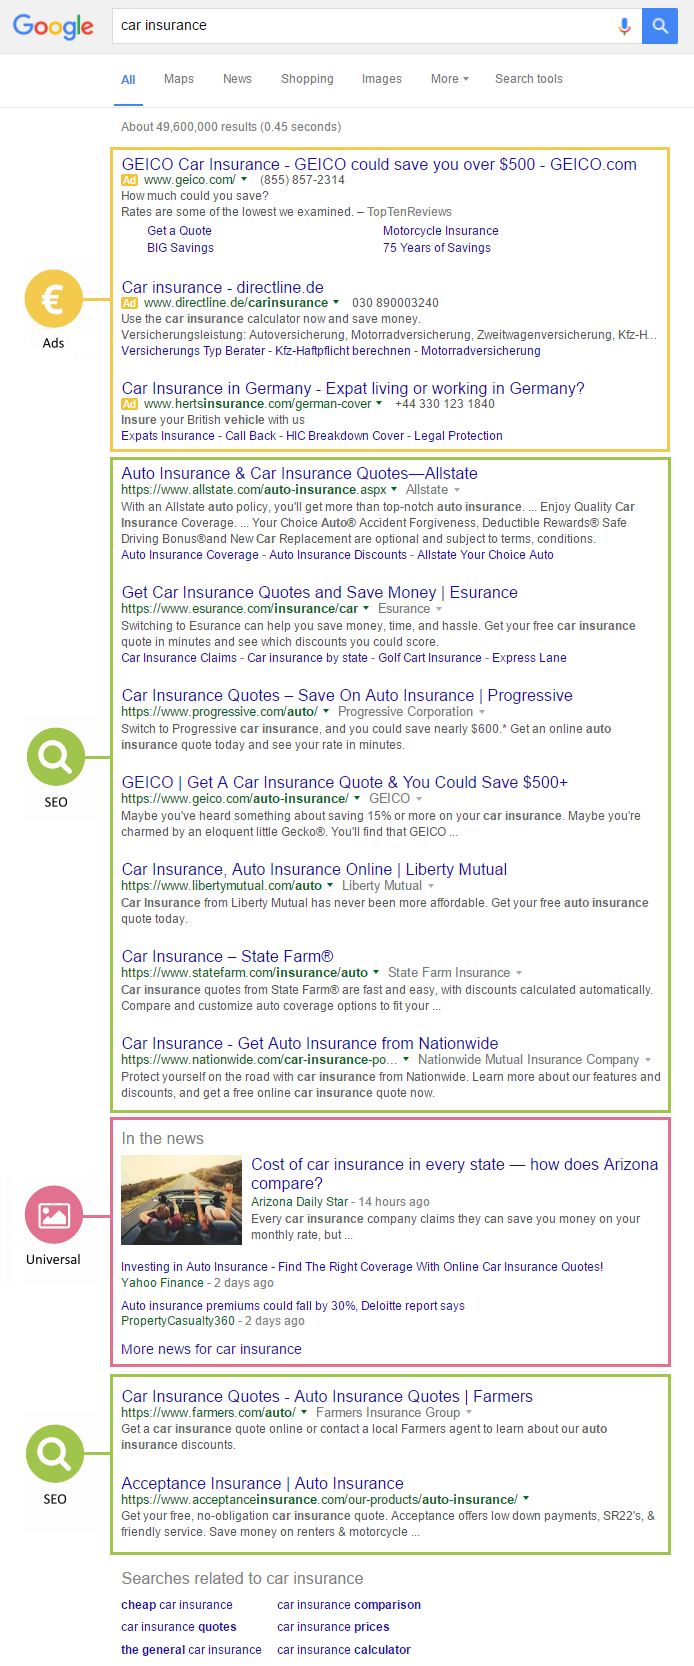 a typical Google search engine result page (SERP)